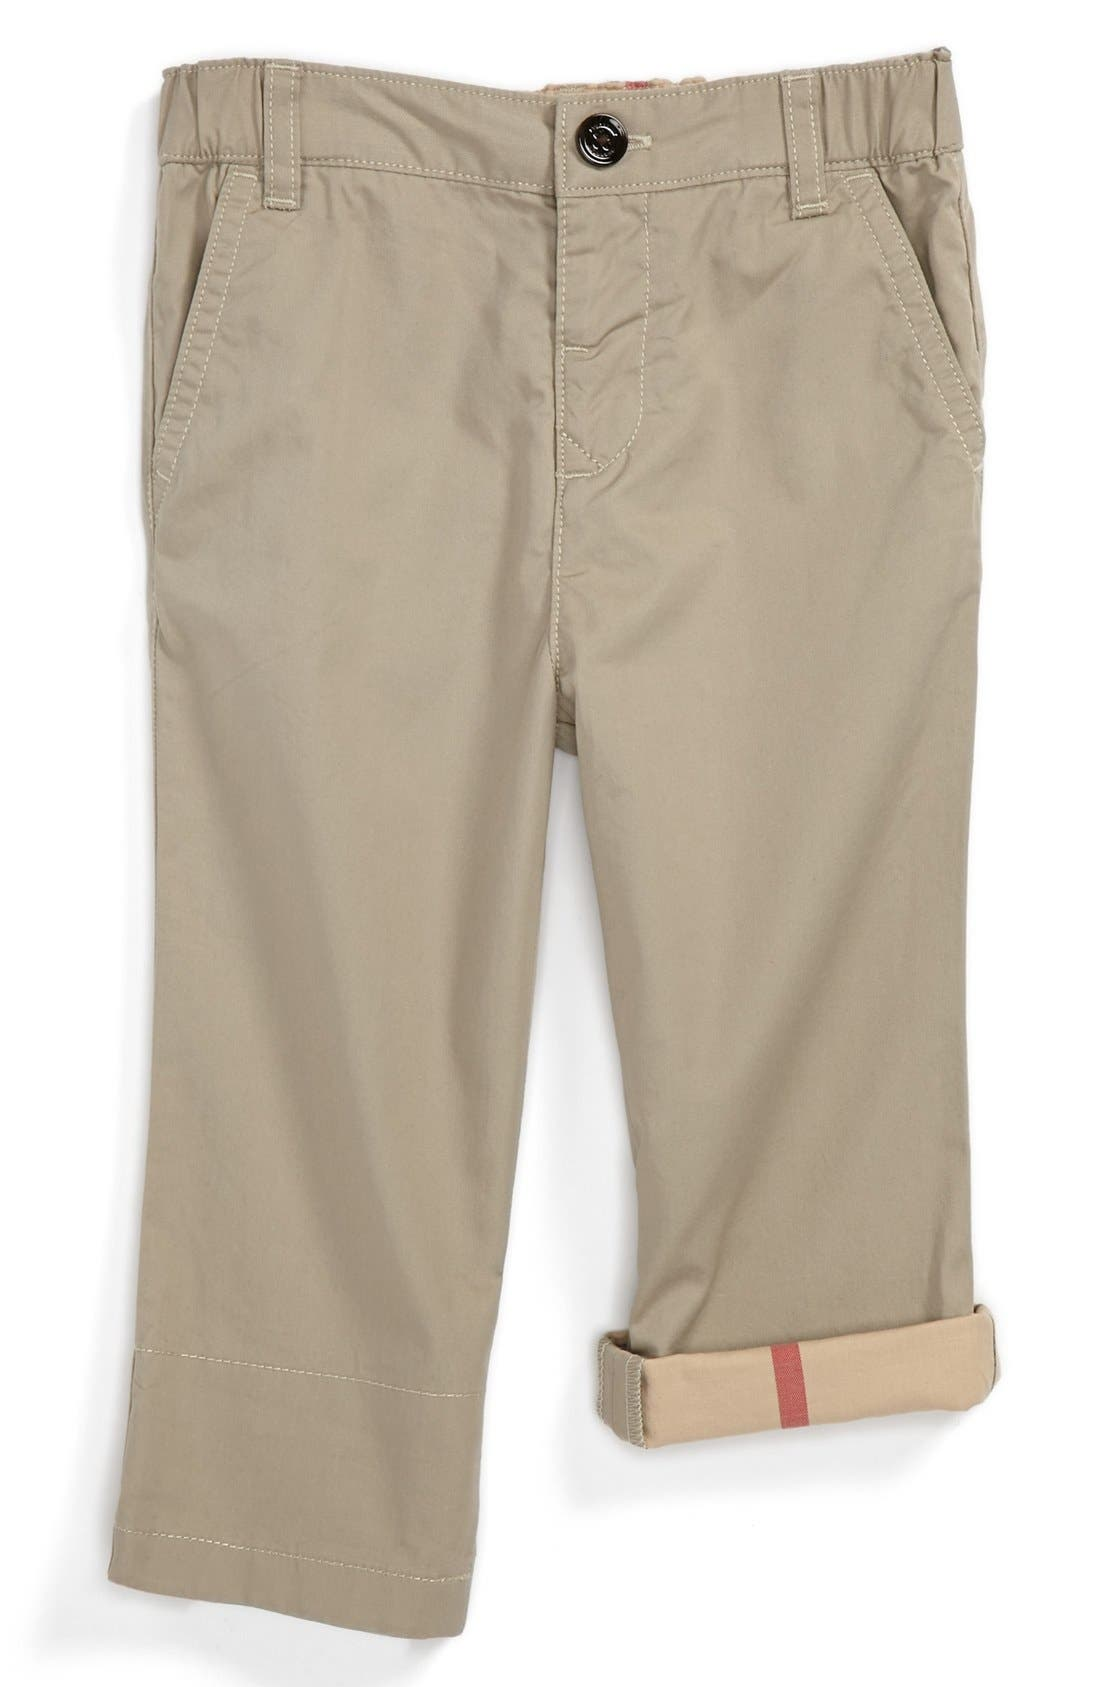 Main Image - Burberry 'Ricky' Check Lined Roll Cuff Pants (Baby Boys)